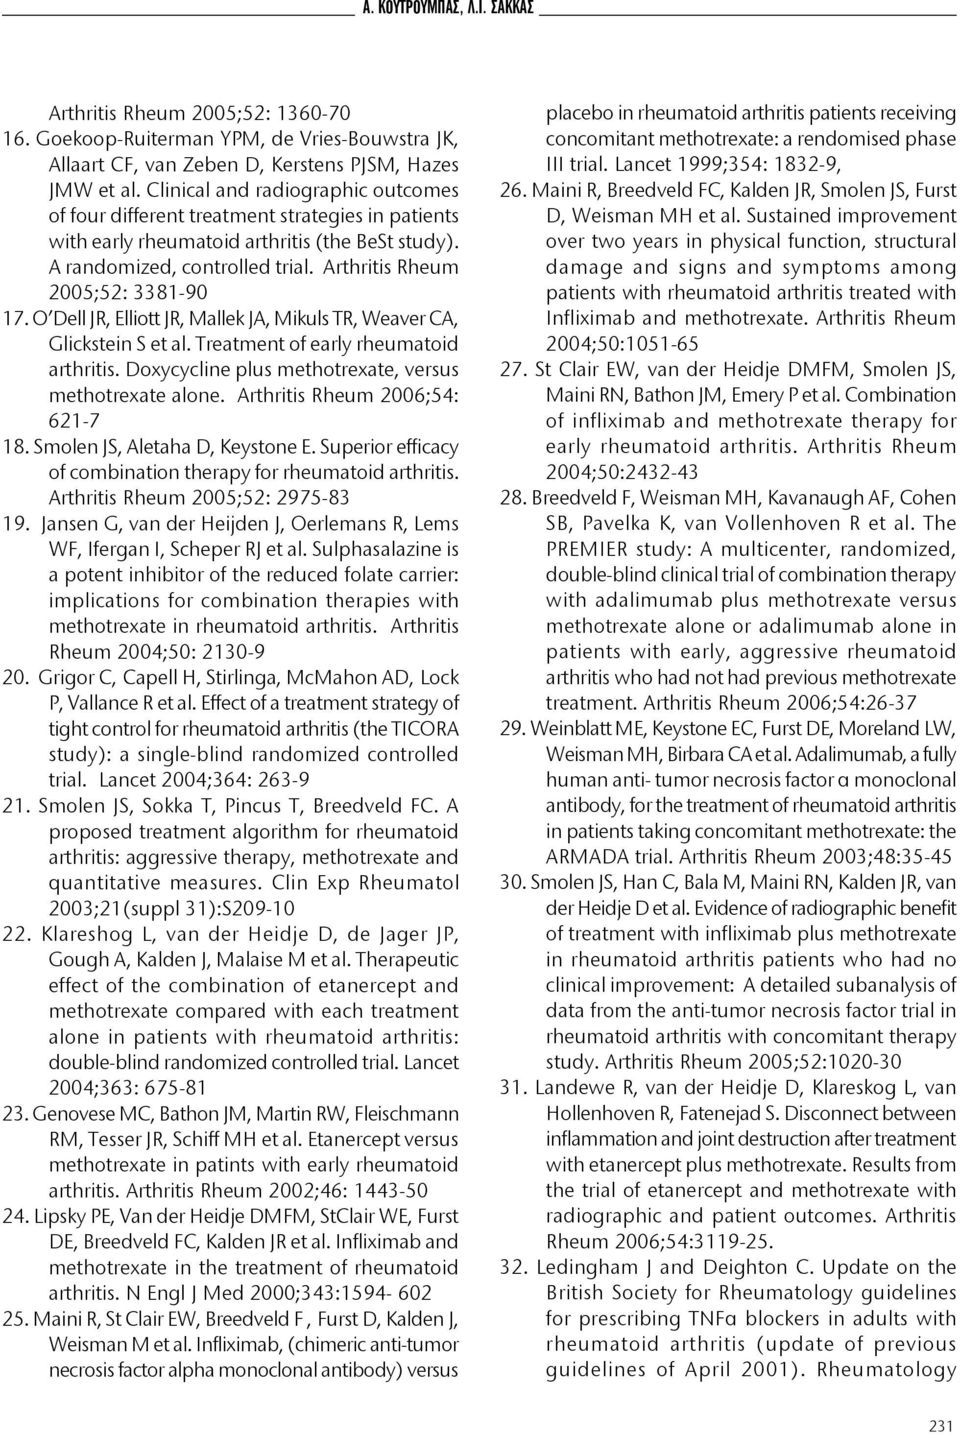 Arthritis Rheum 2005;52: 3381-90 17. O Dell JR, Elliott JR, Mallek JA, Mikuls TR, Weaver CA, Glickstein S et al. Treatment of early rheumatoid arthritis.